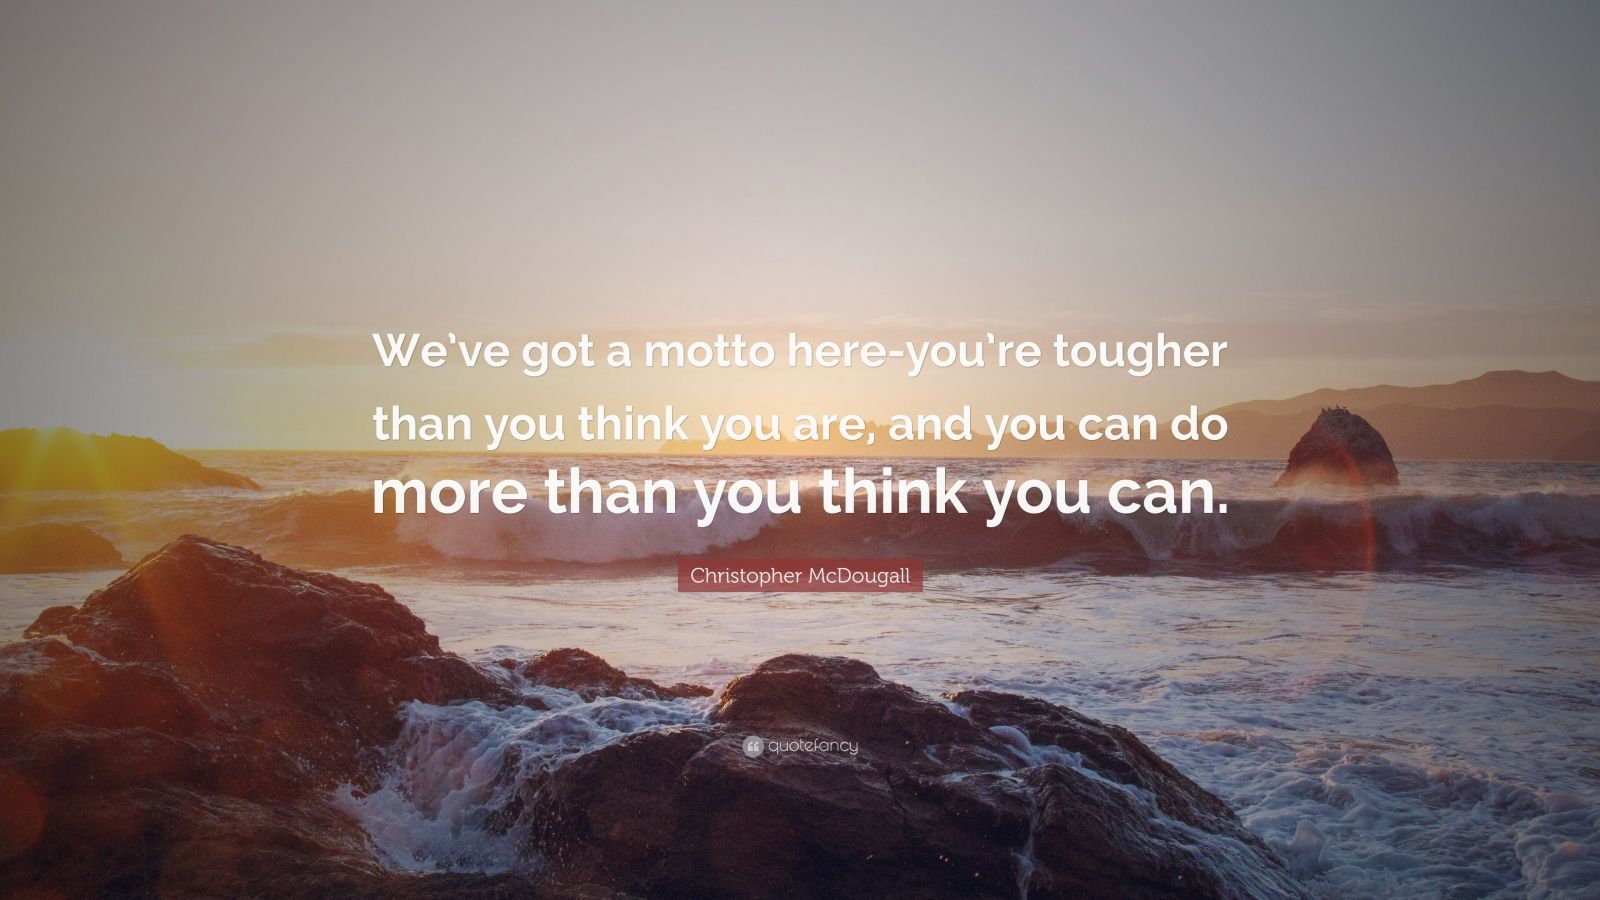 """Christopher McDougall Quote: """"We've got a motto here-you're tougher than you think you are, and you can do more than you think you can."""""""